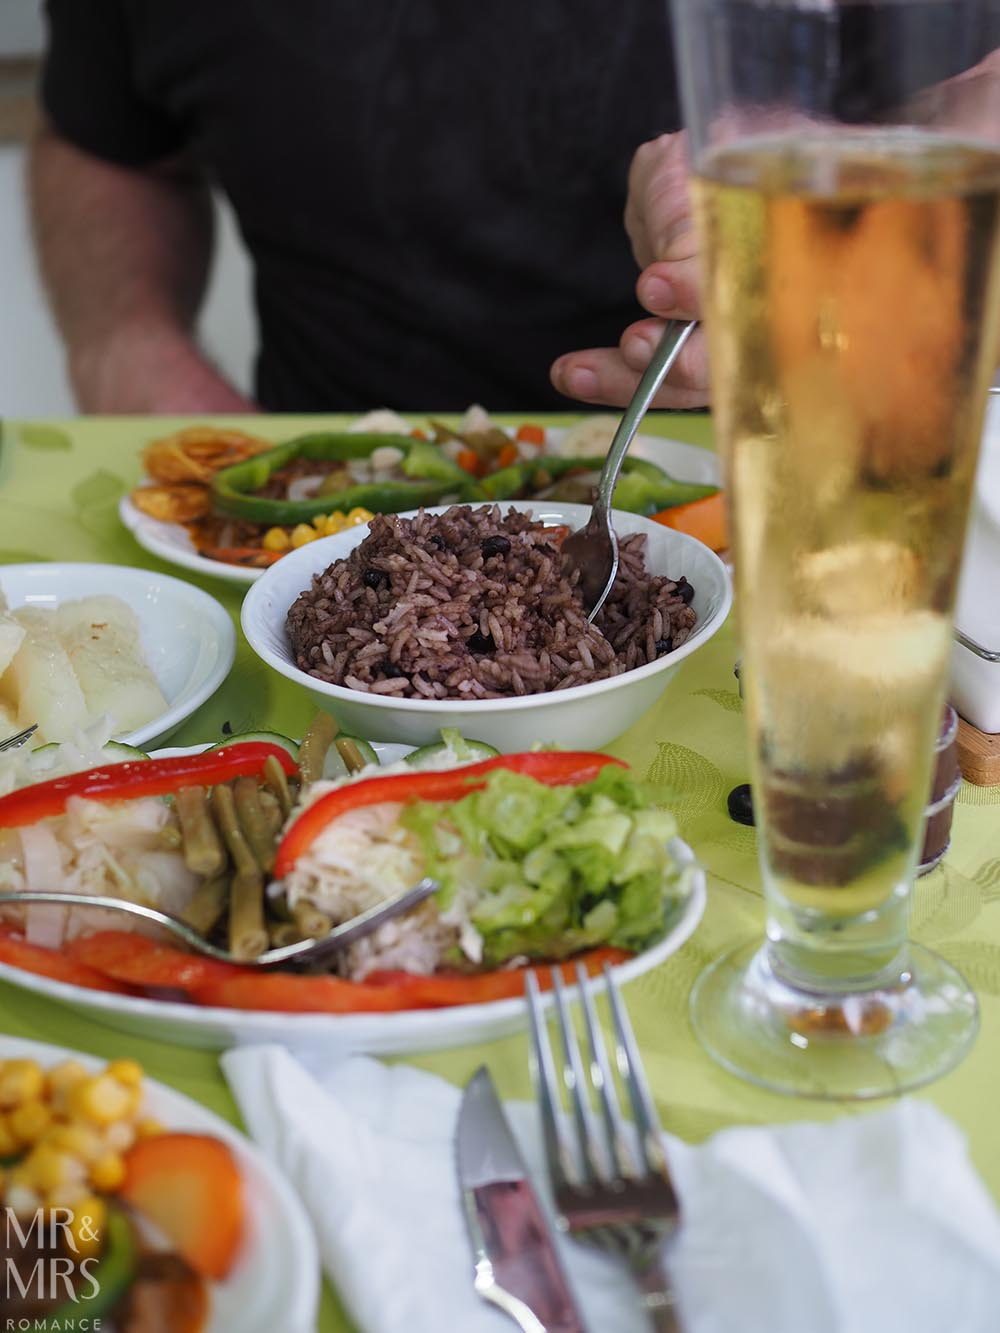 Why we owe Cuba an apology - rice and beans with ropa vieja